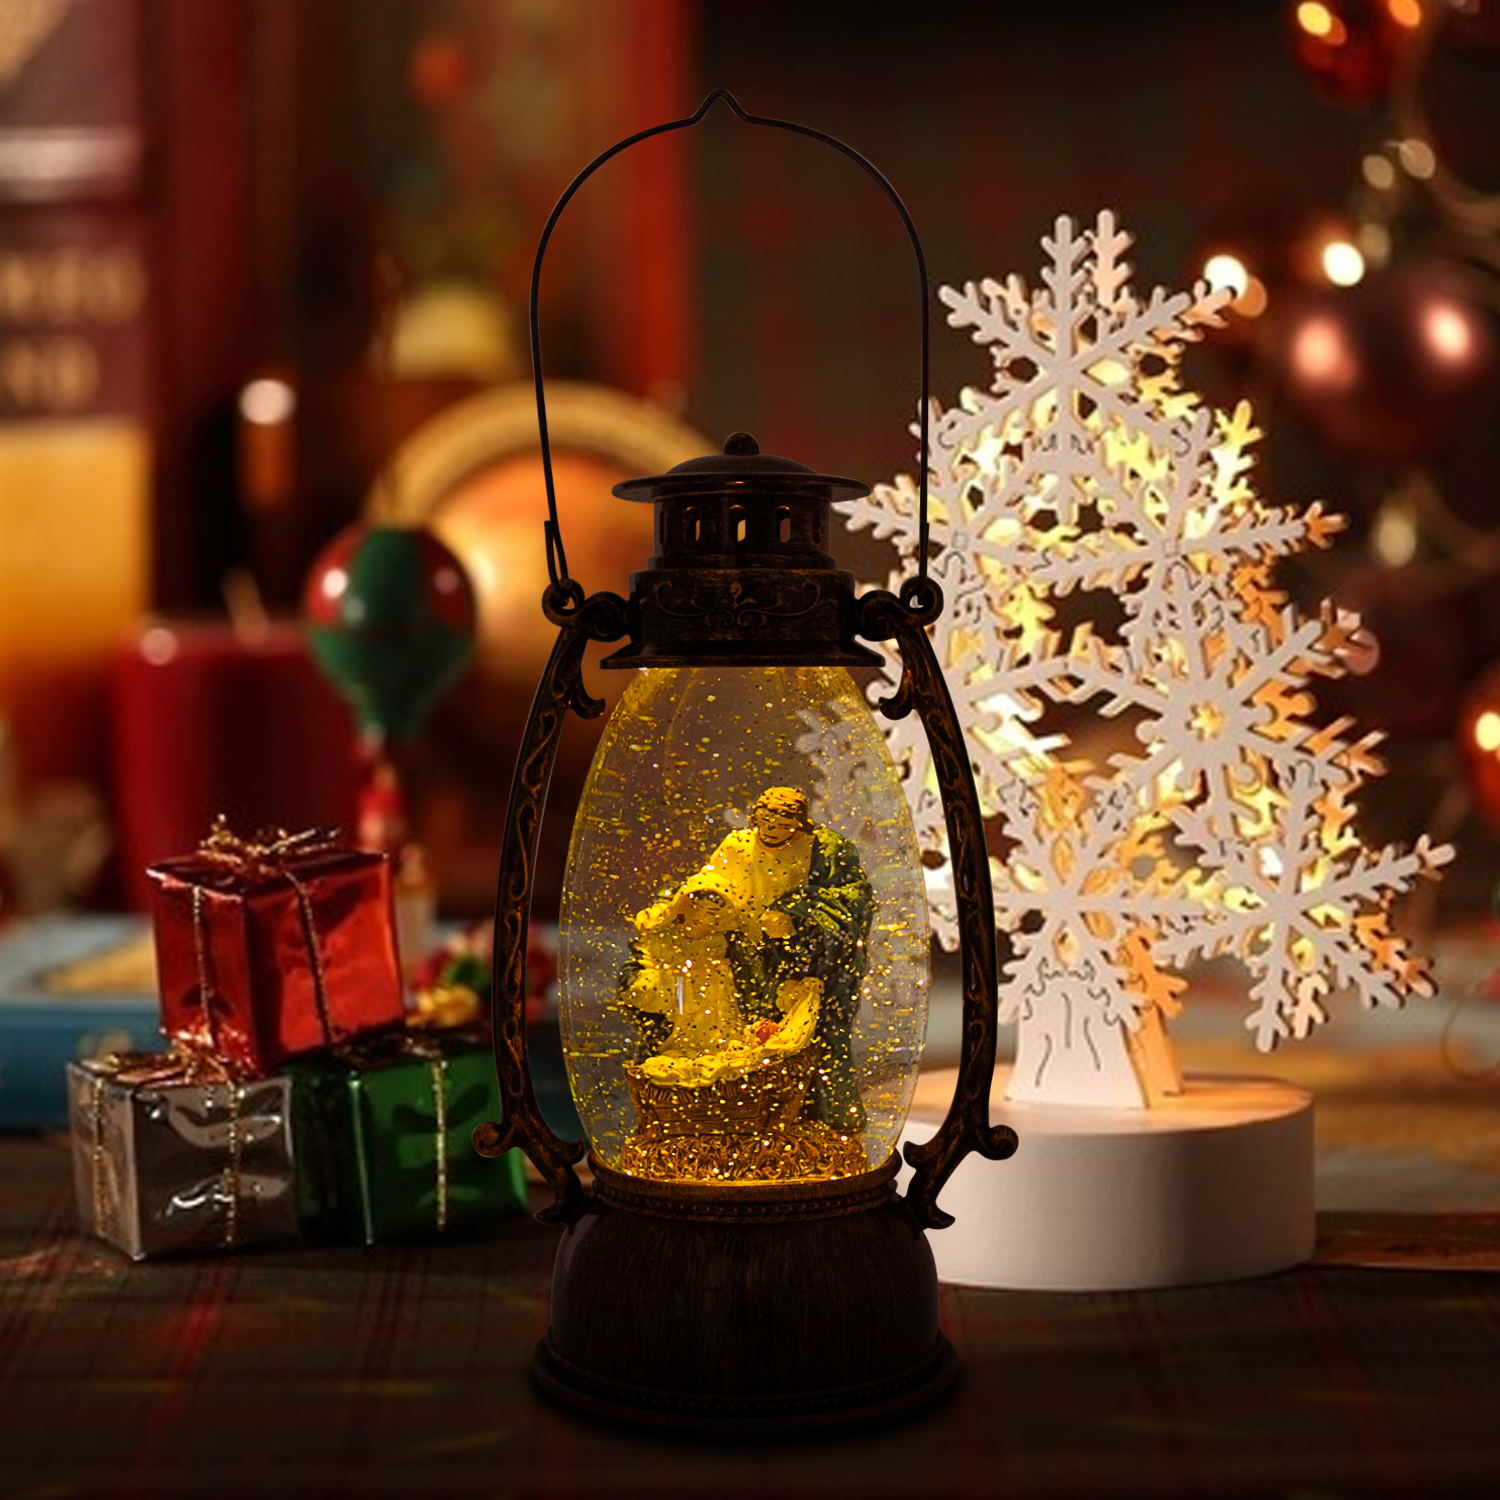 Christmas-Snow-Globe-LED-Lighted-Lantern-Battery-Operated-Swirling-Glitter-Water thumbnail 3